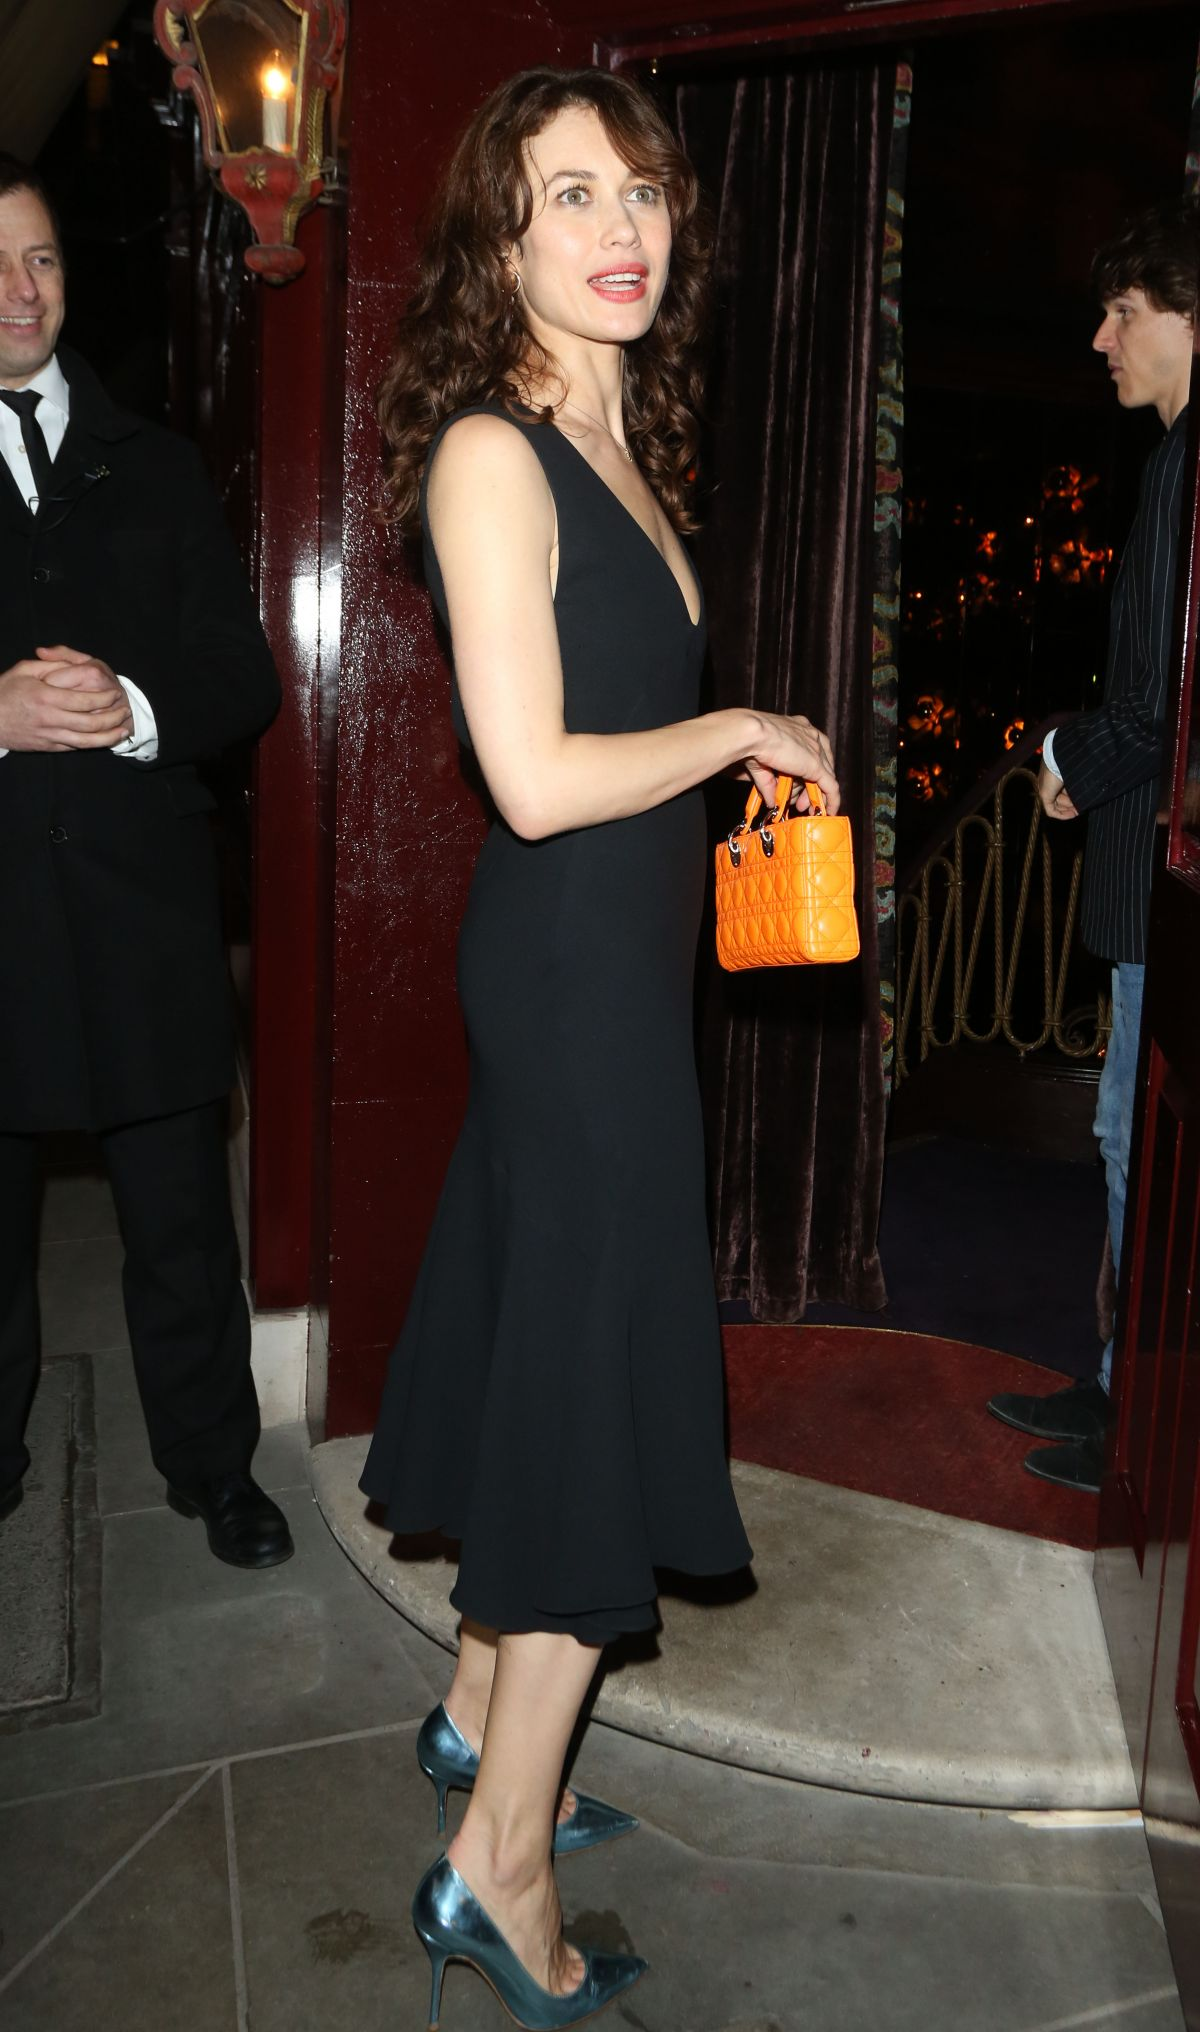 OLGA KURYLENKO at Christian Dior Cruise Afterparty in London 05/31 ...